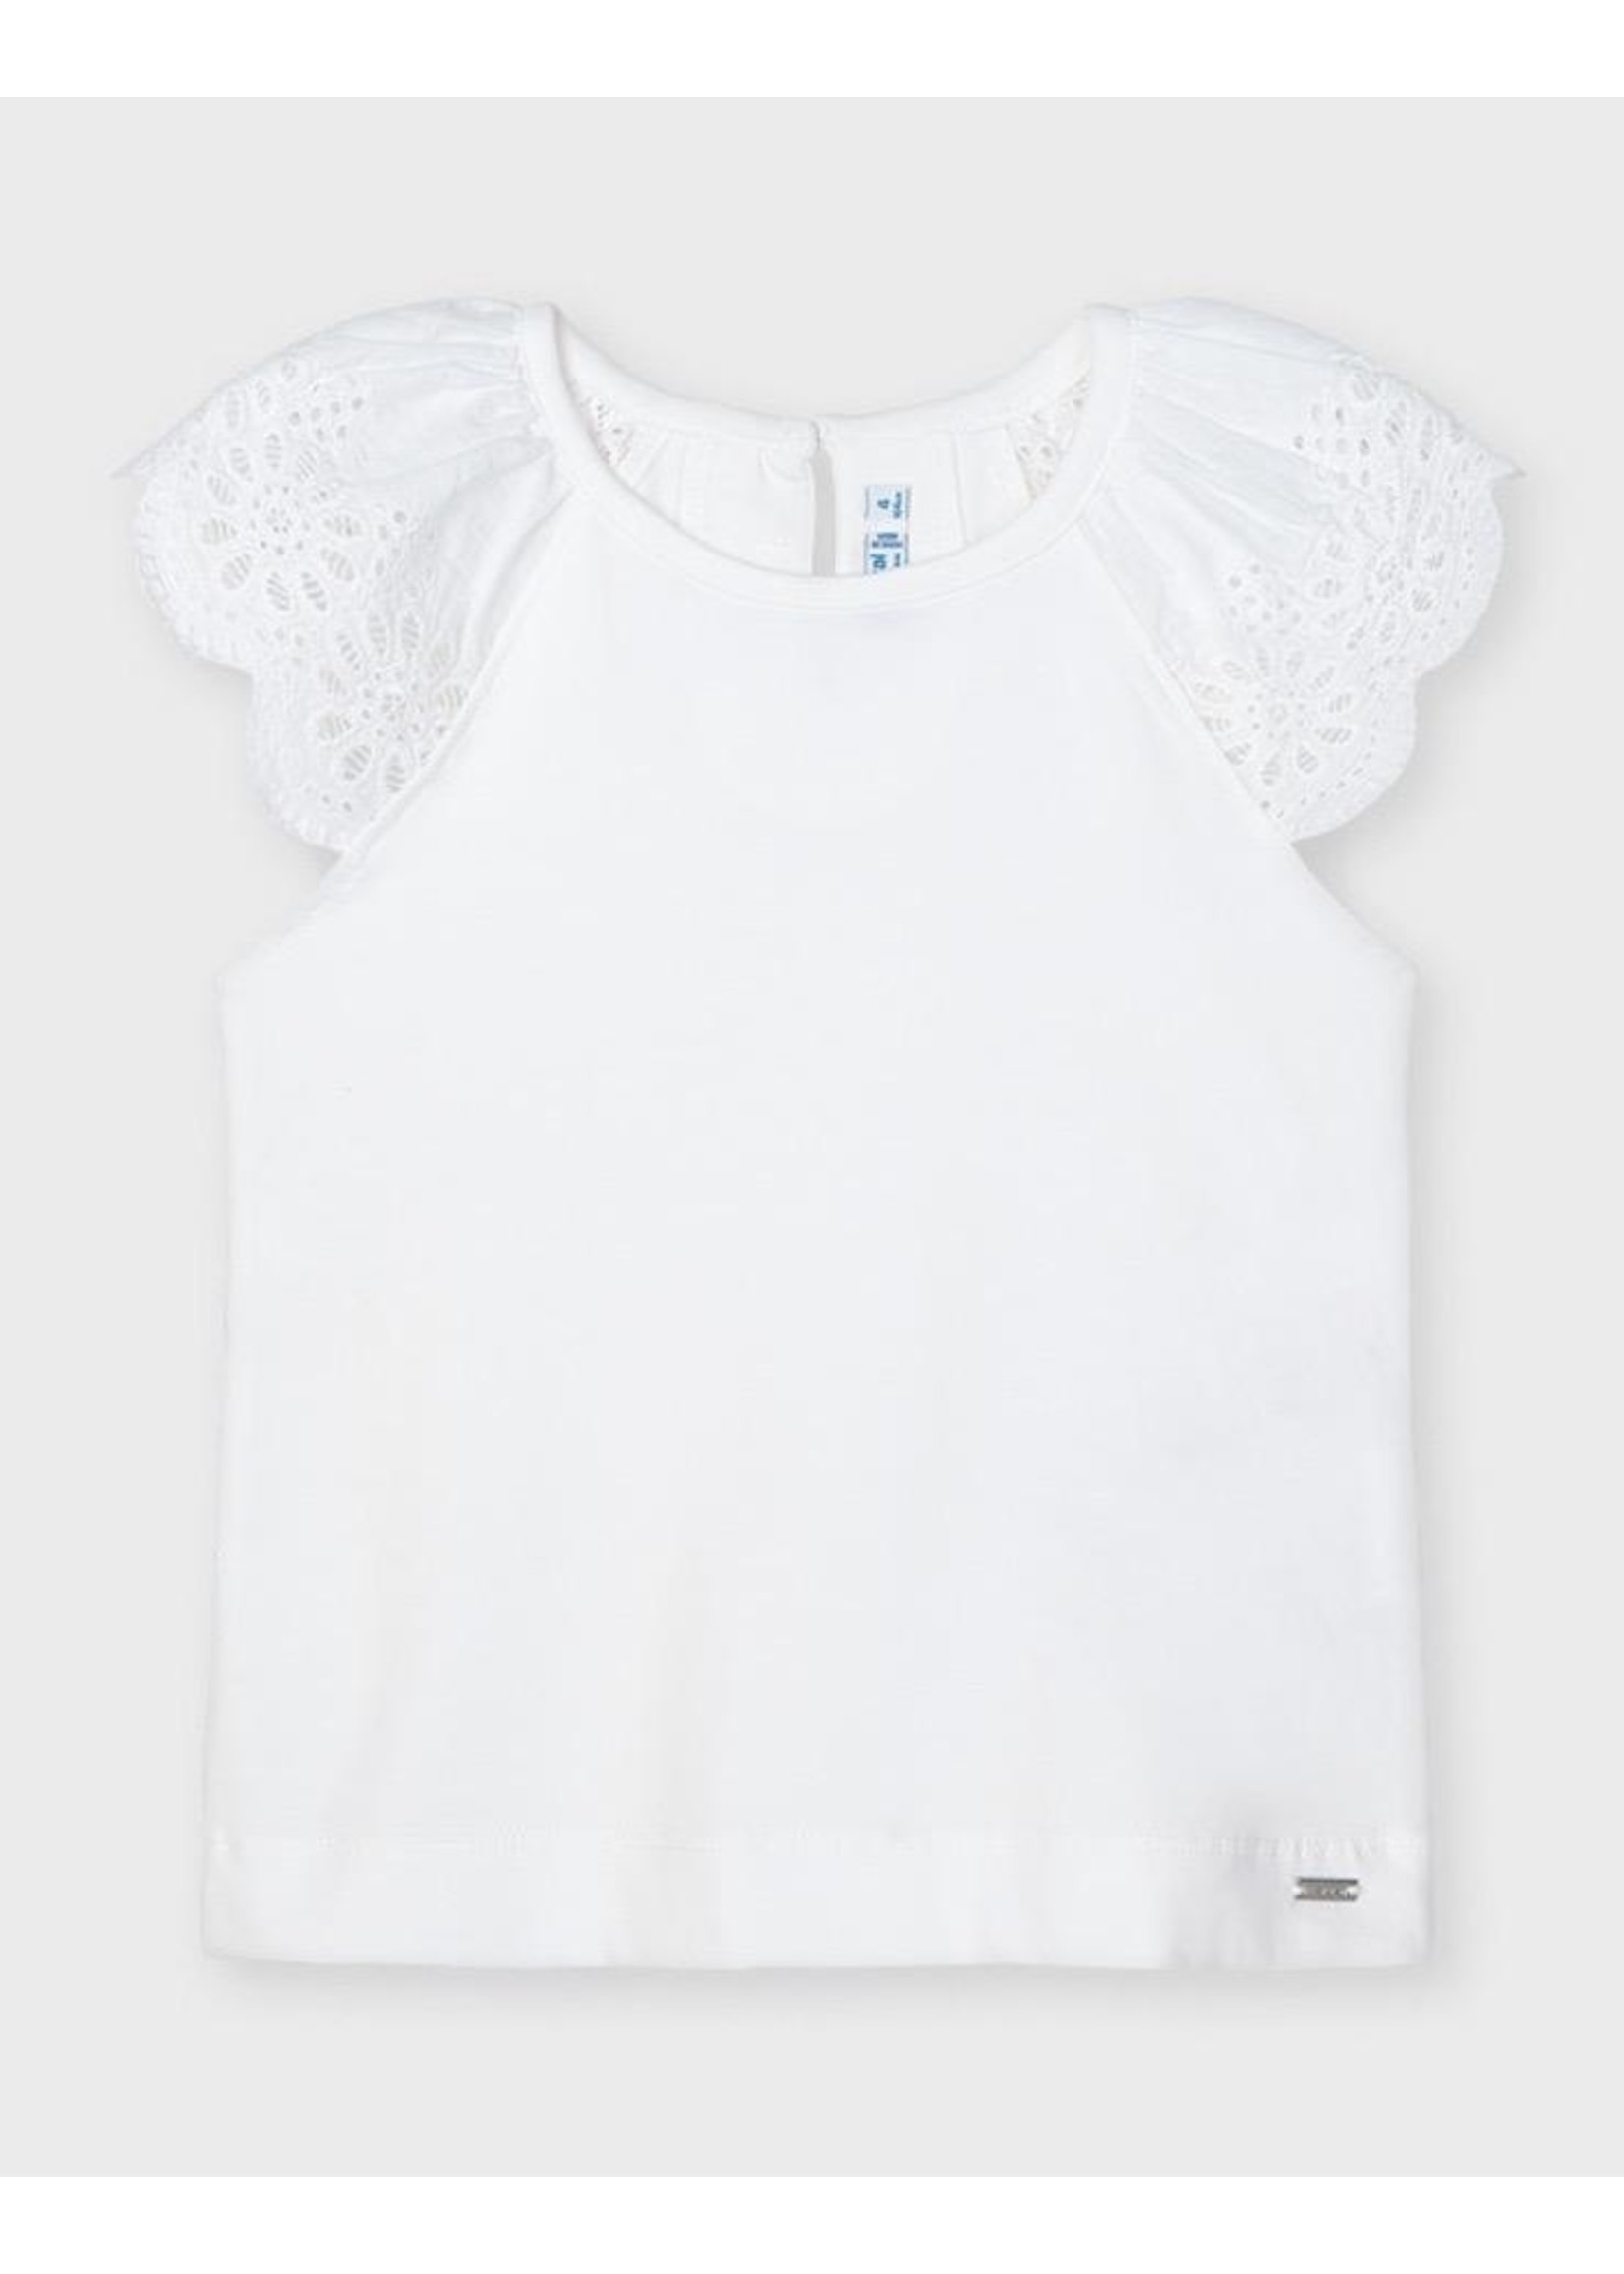 Mayoral Mayoral, White Perforated Sleeves S-shirt